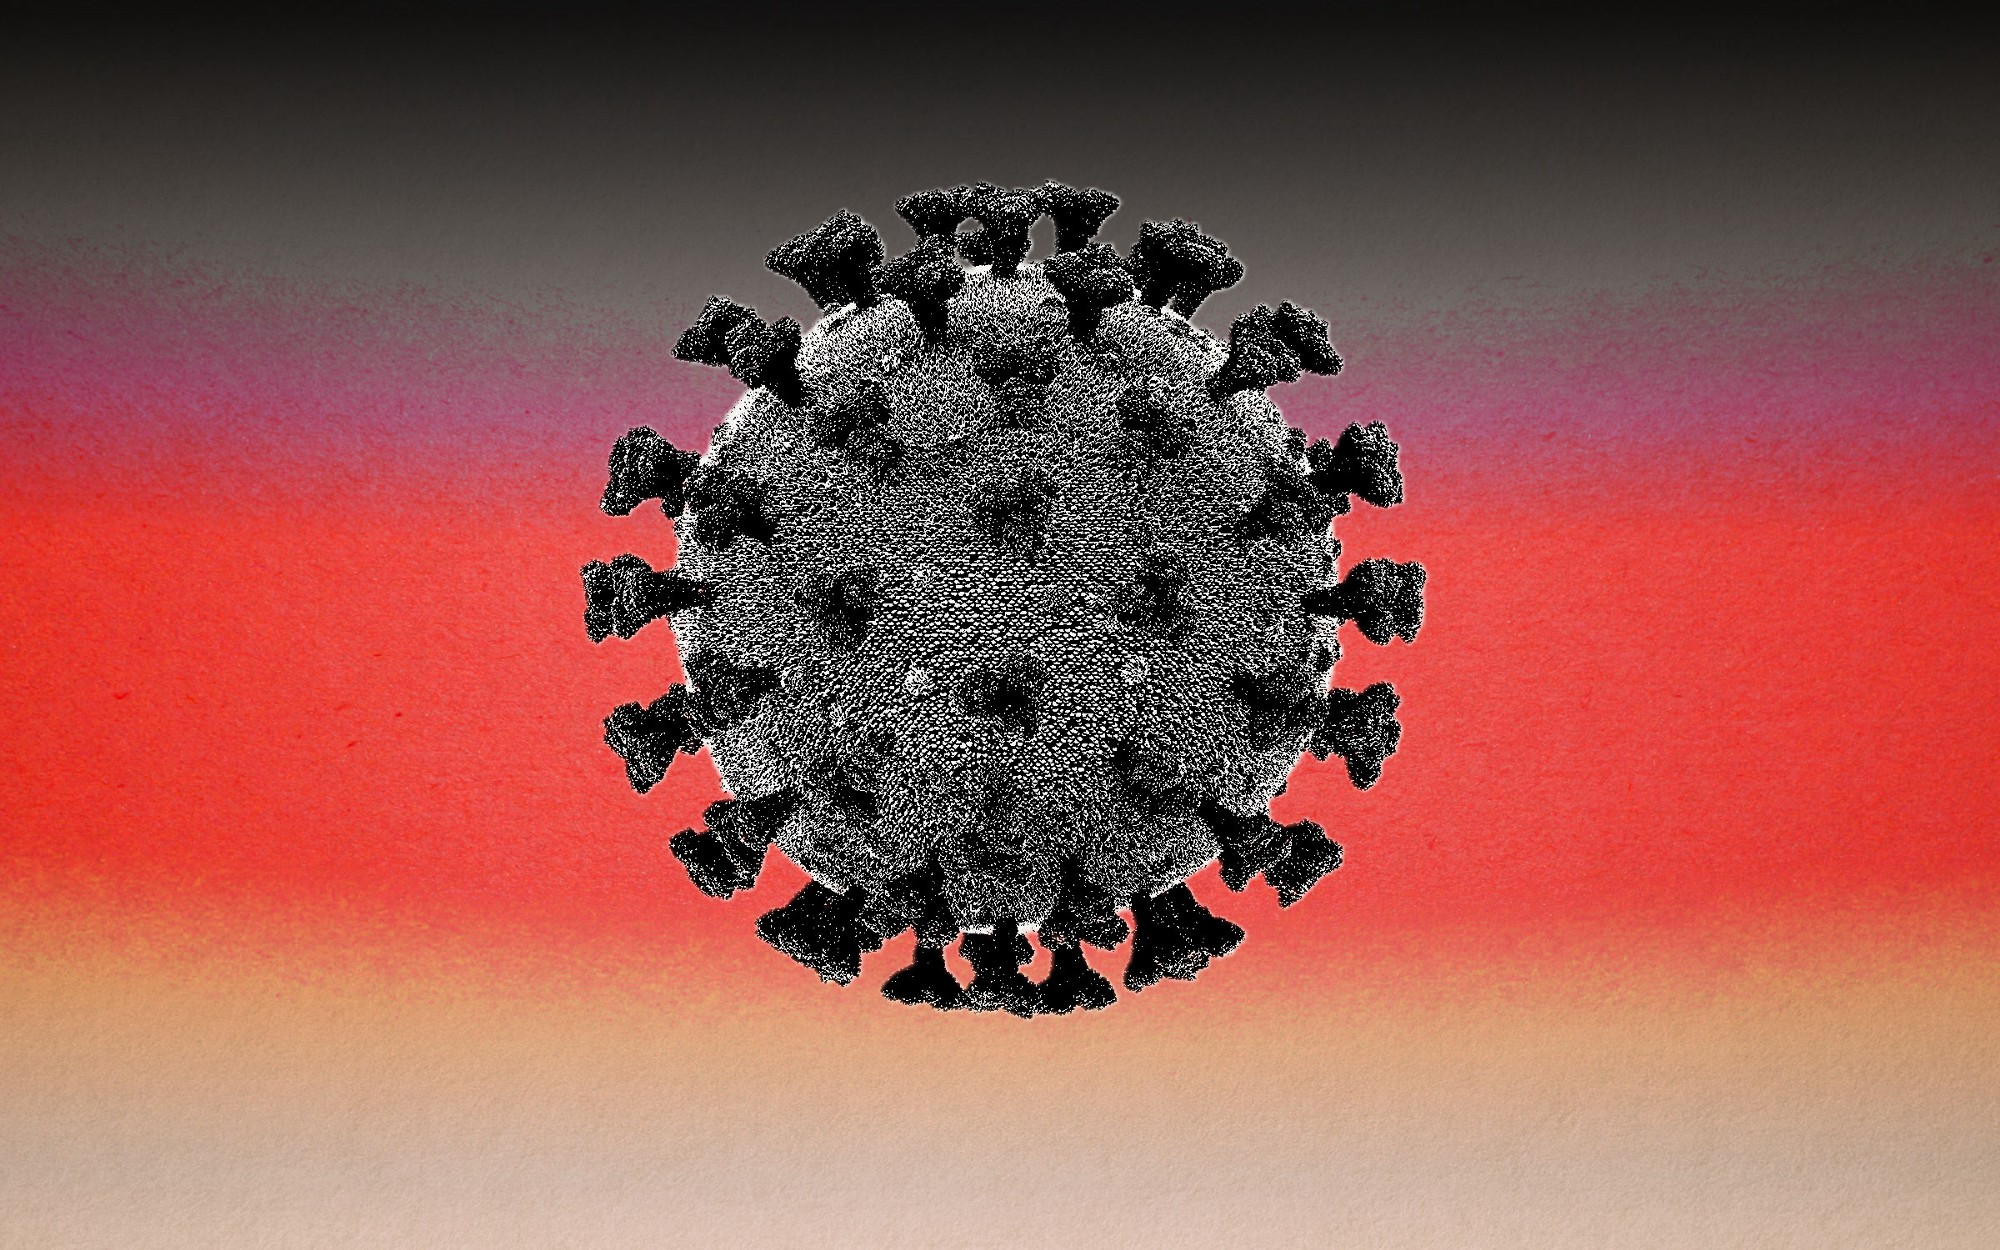 A photo of a black microscoped coronavirus against a black-red-cream gradient background.